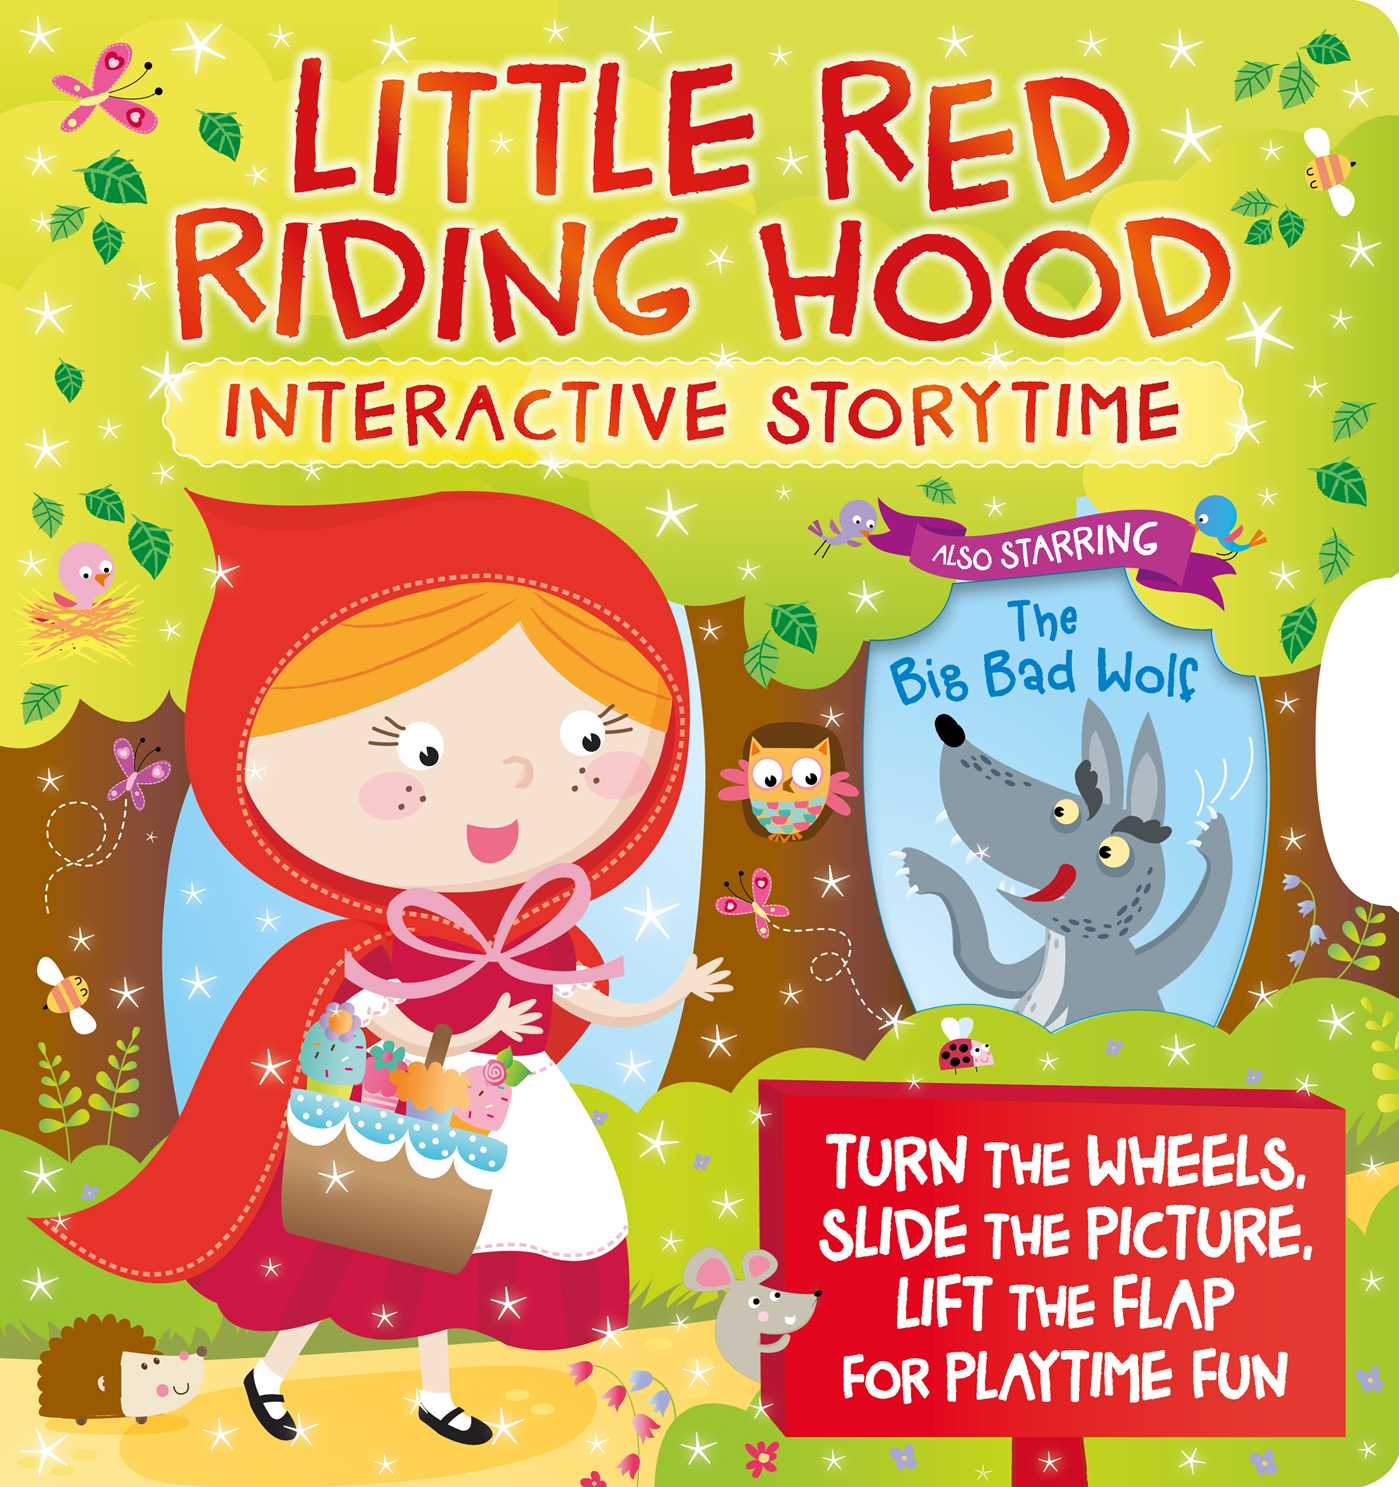 Little red riding hood interactive storytime 9781785573064 hr